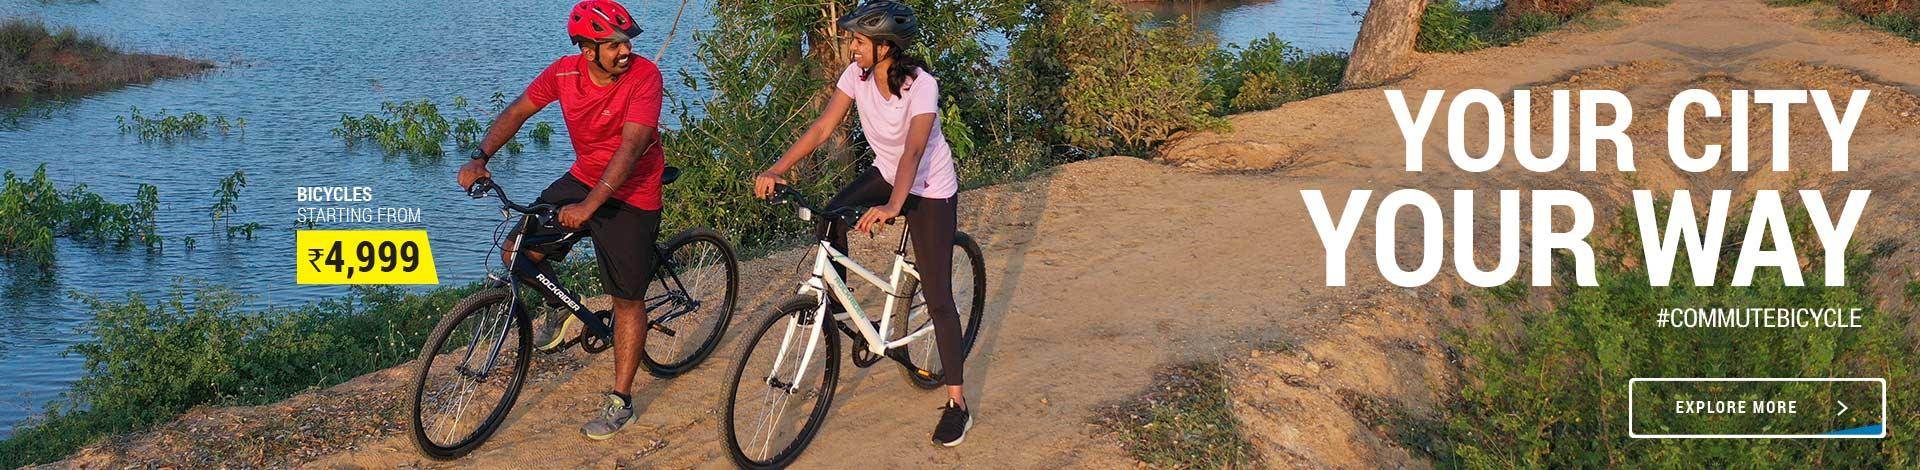 Decathlon Bicycles, low budget cycles, BTWIN Cycles,Decathlon Kids cycles, Decathlon Sports cycles, Decathlon Bicycles